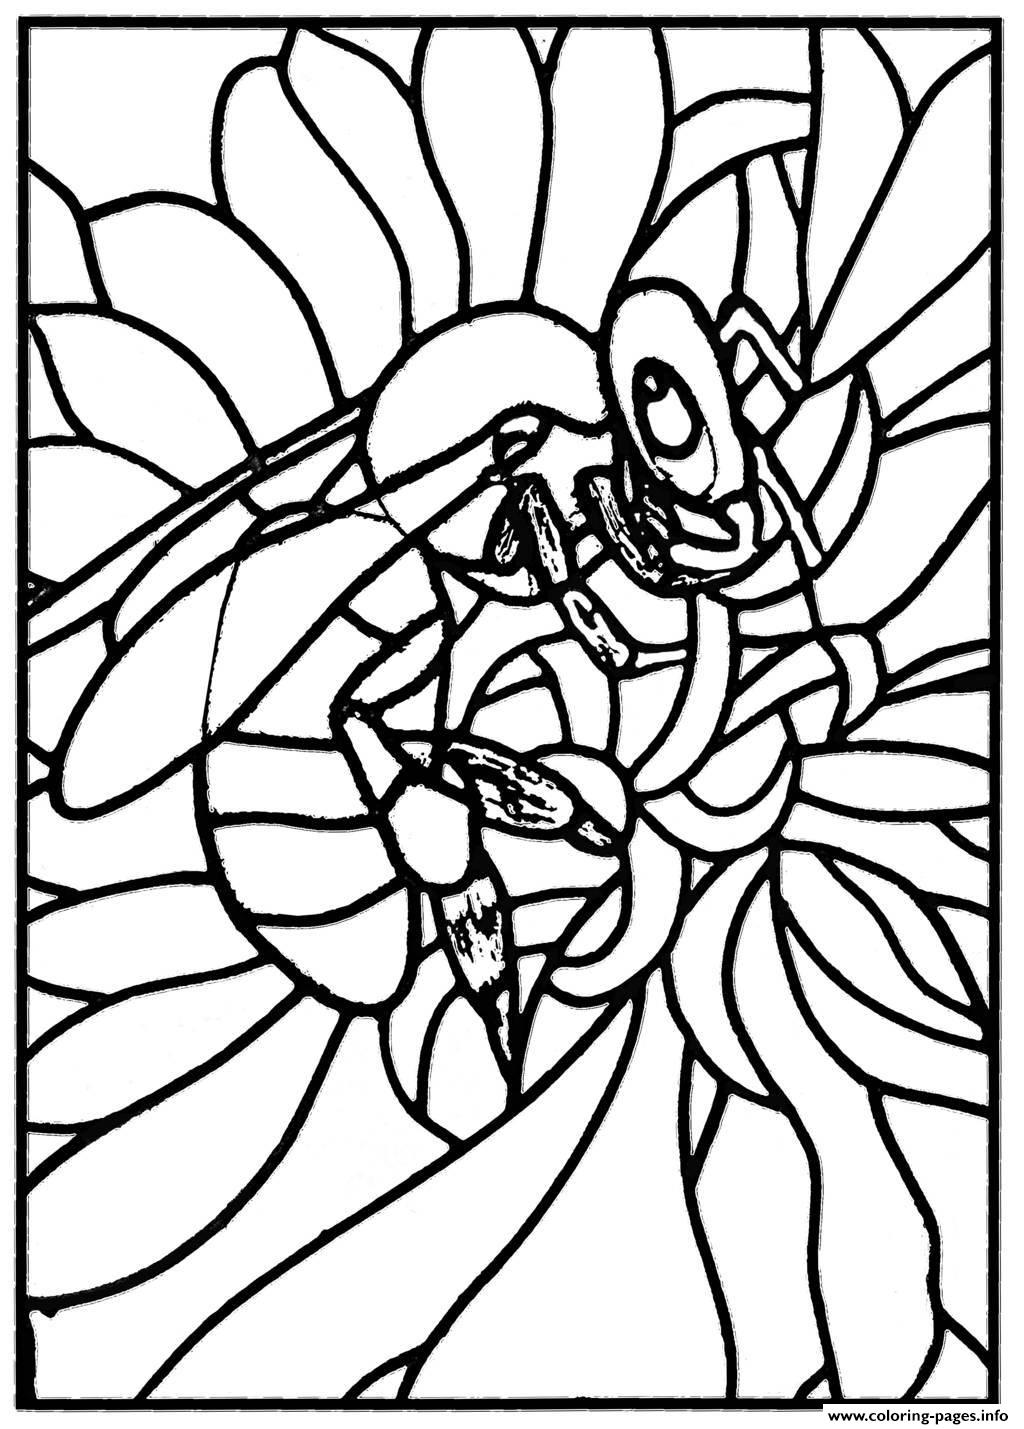 stained glass bee workshop jb tosi 2010 coloring pages printable